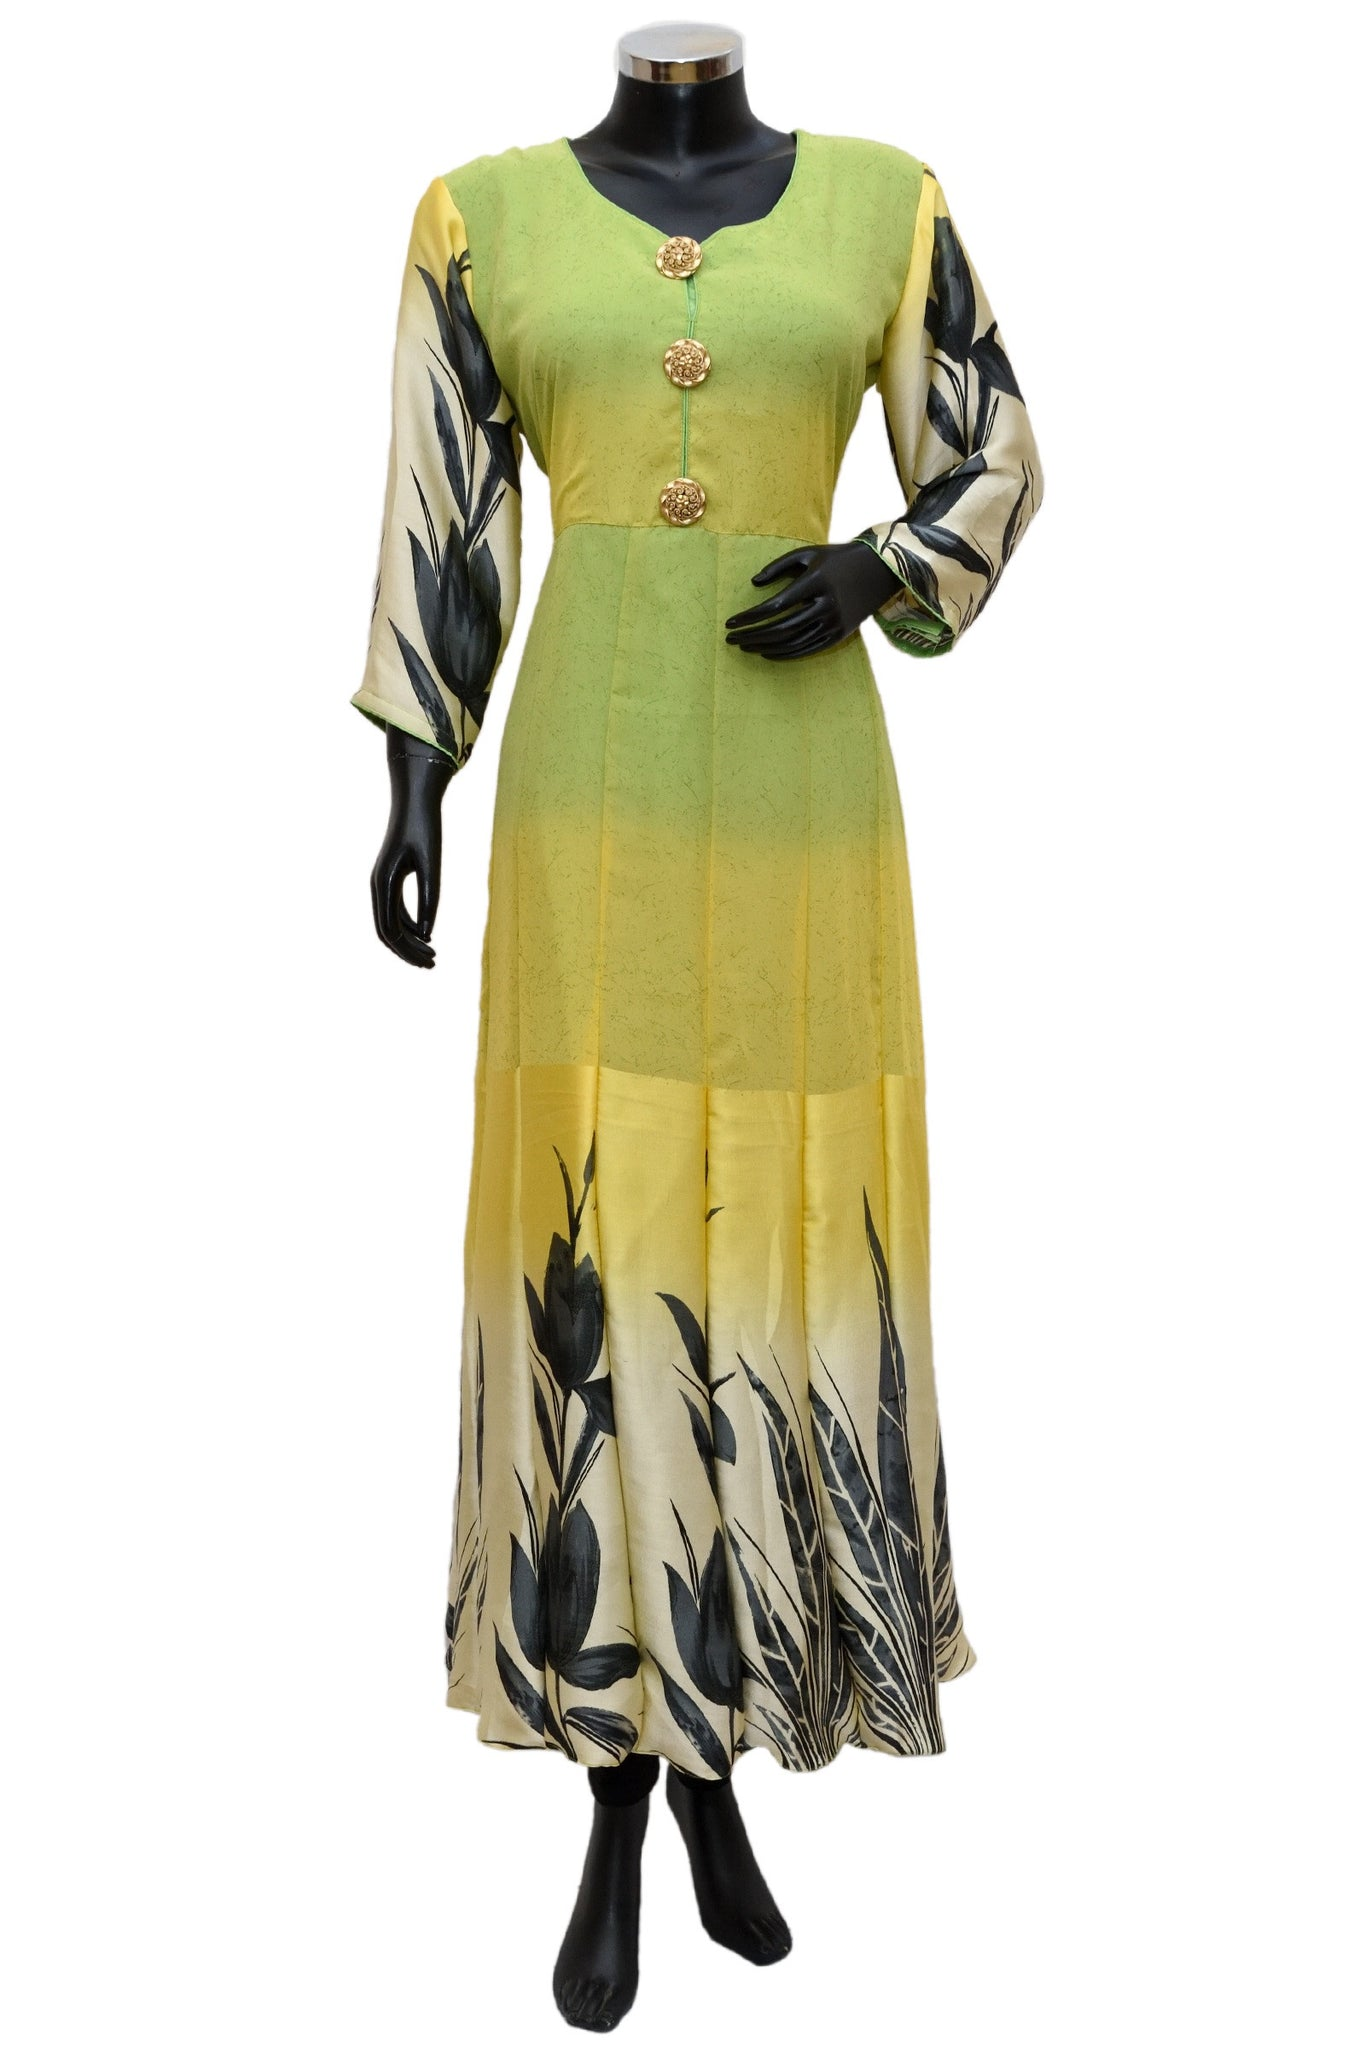 Long maxi dress in yellow color #fdn0502 / 23